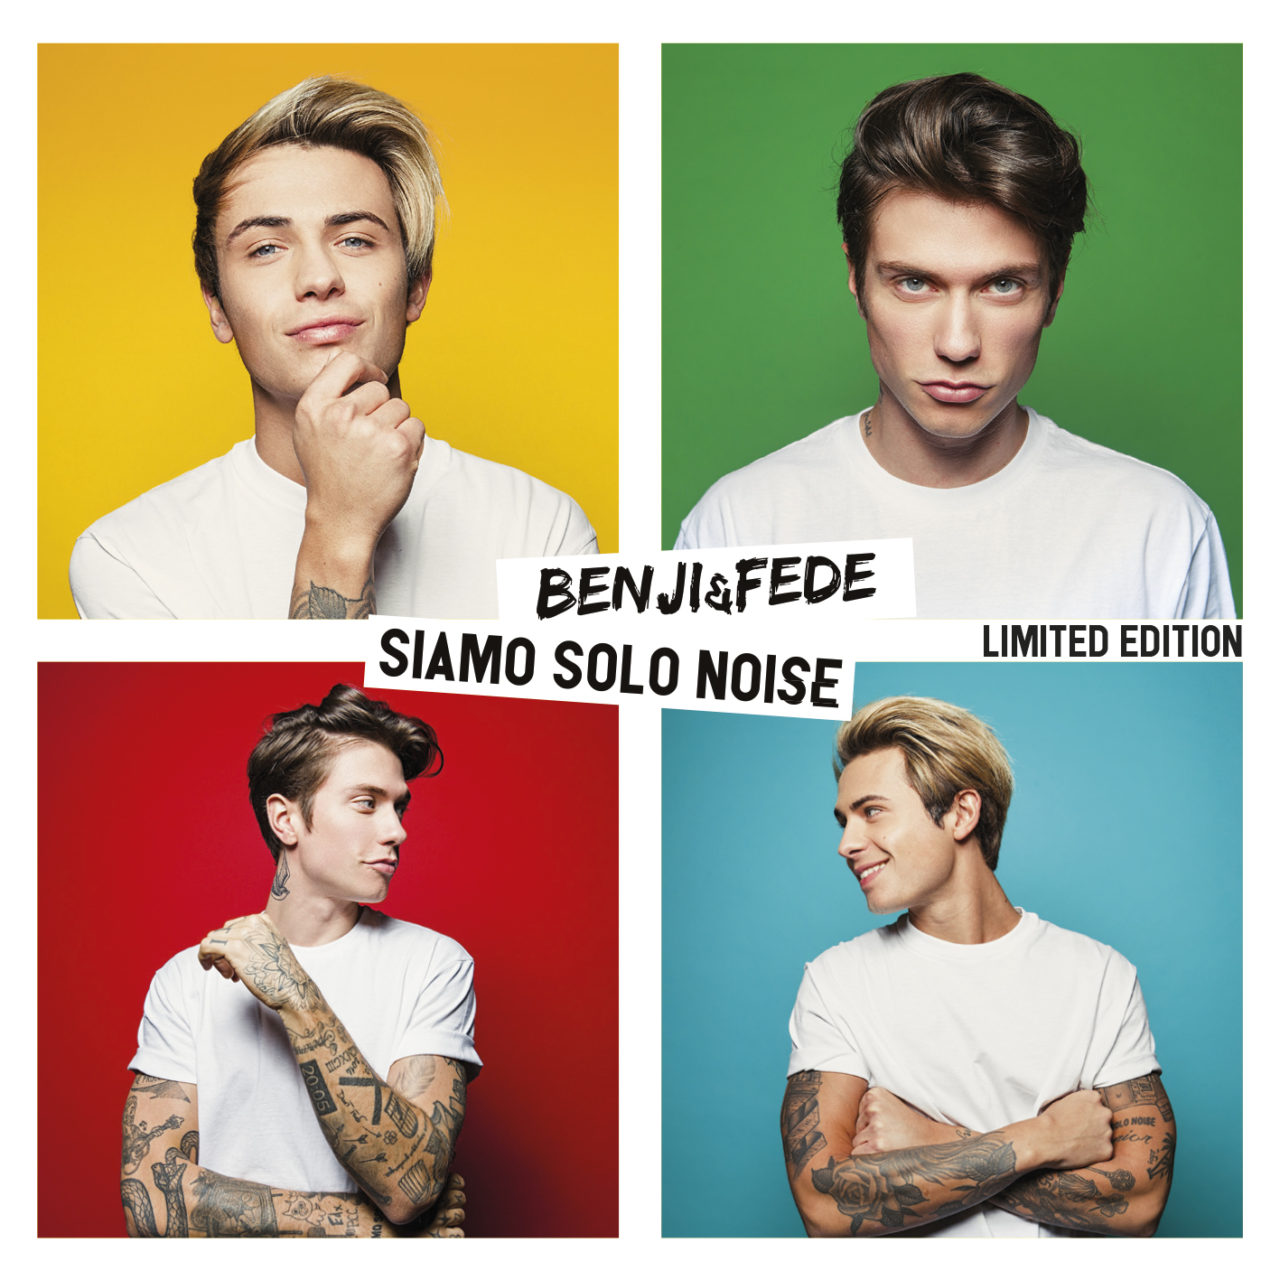 Benji & Fede Siamo Solo Noise Limited Edition